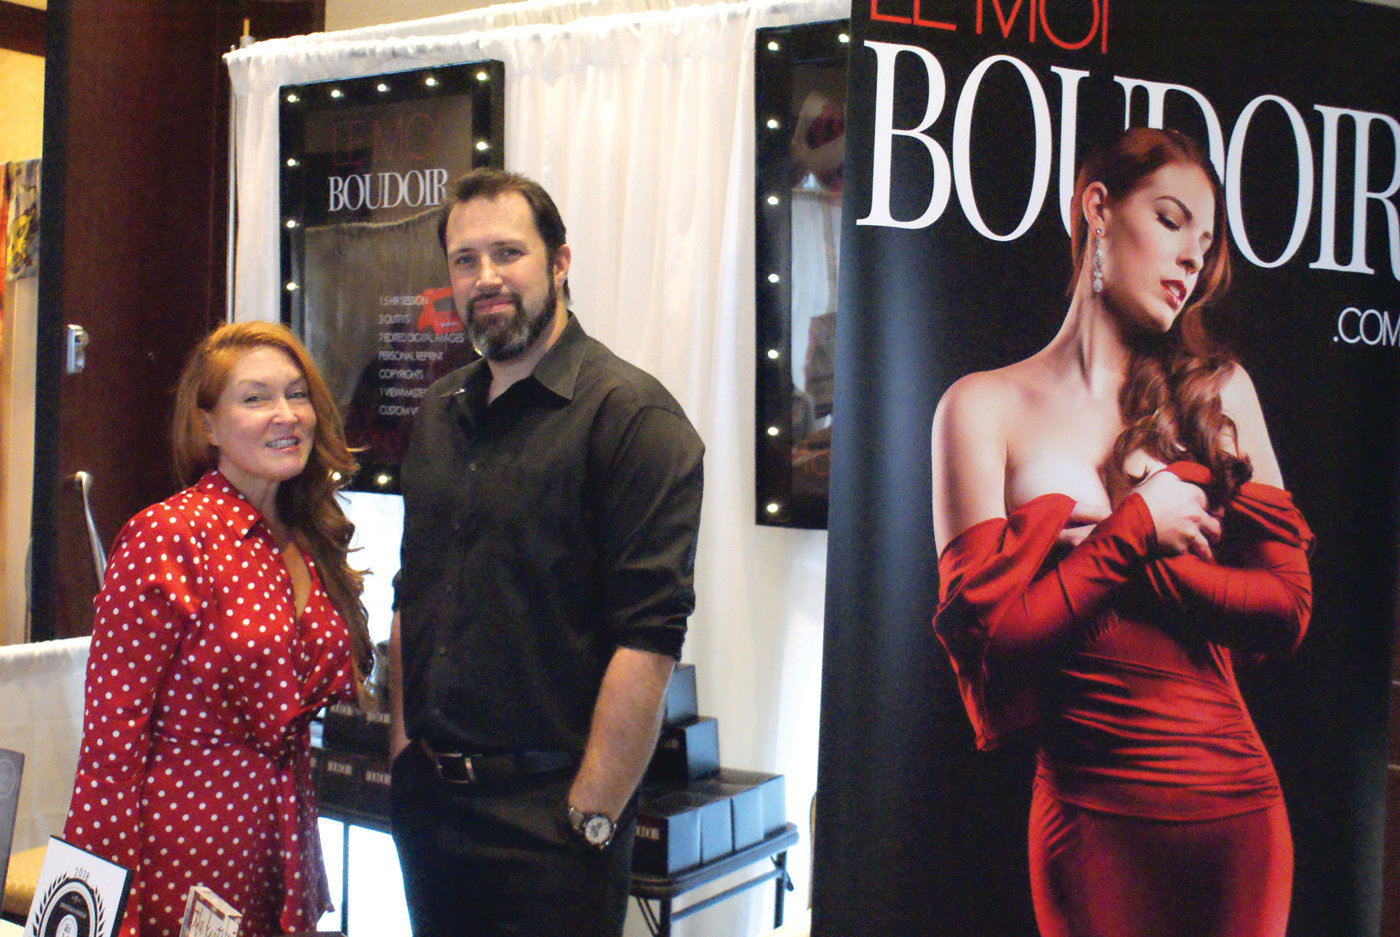 PHOTOGRAPHERS: Participating in the Rhode Island Women's Expo on Nov. 25 at the Crowne Plaza in Warwick were Michelle Carpenter (owner of Lemoi Boudoir Photographers located in Johnston) and her business partner Adam Clear.